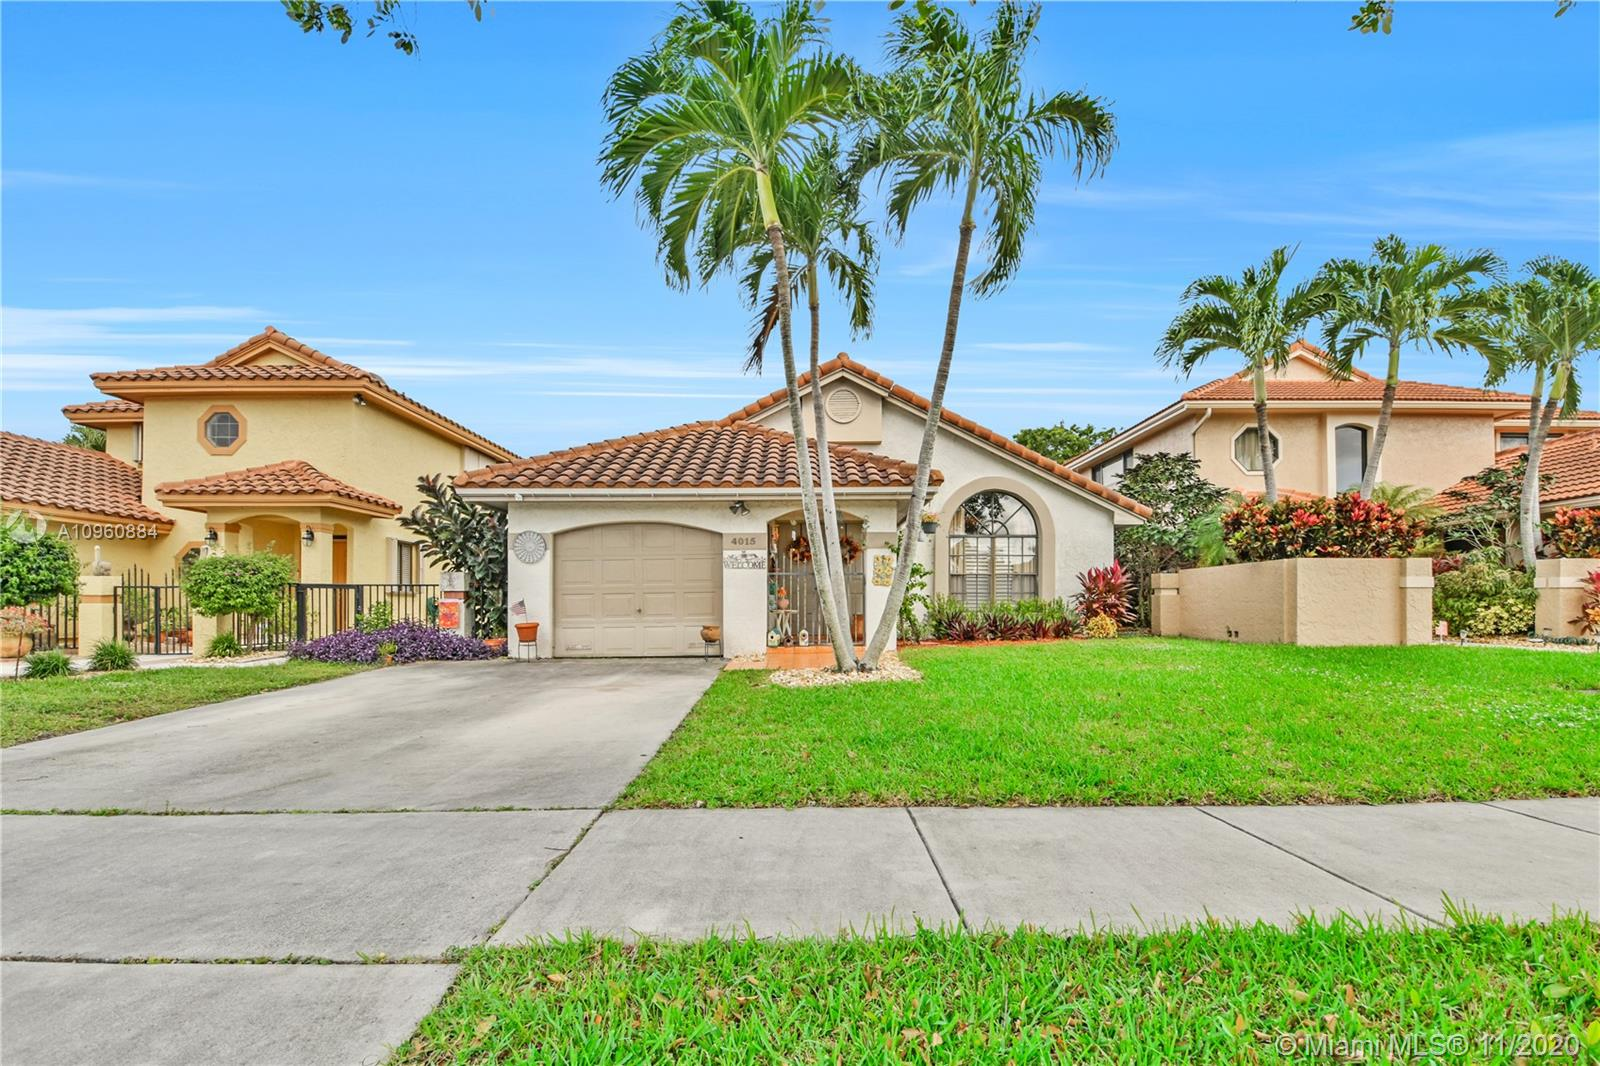 You will love this 1-story home located in the Villages of Hillsboro Deerfield Beach. This one of the best places to live in Florida. It offers residents an urban feel with access to many restaurants, parks, and highly rated public schools.  DON'T MISS THIS OPPORTUNITY. Make your own this 3-bedrooms, 2-bathrooms home, with an extra-large master bedroom. This house is perfect for entertaining with a large family room, kitchen, and Florida room with access to a cozy backyard with canal views. The central A/C unit is only three years old.   PRICED TO SELL! WILL GO FAST! CALL ME TODAY.